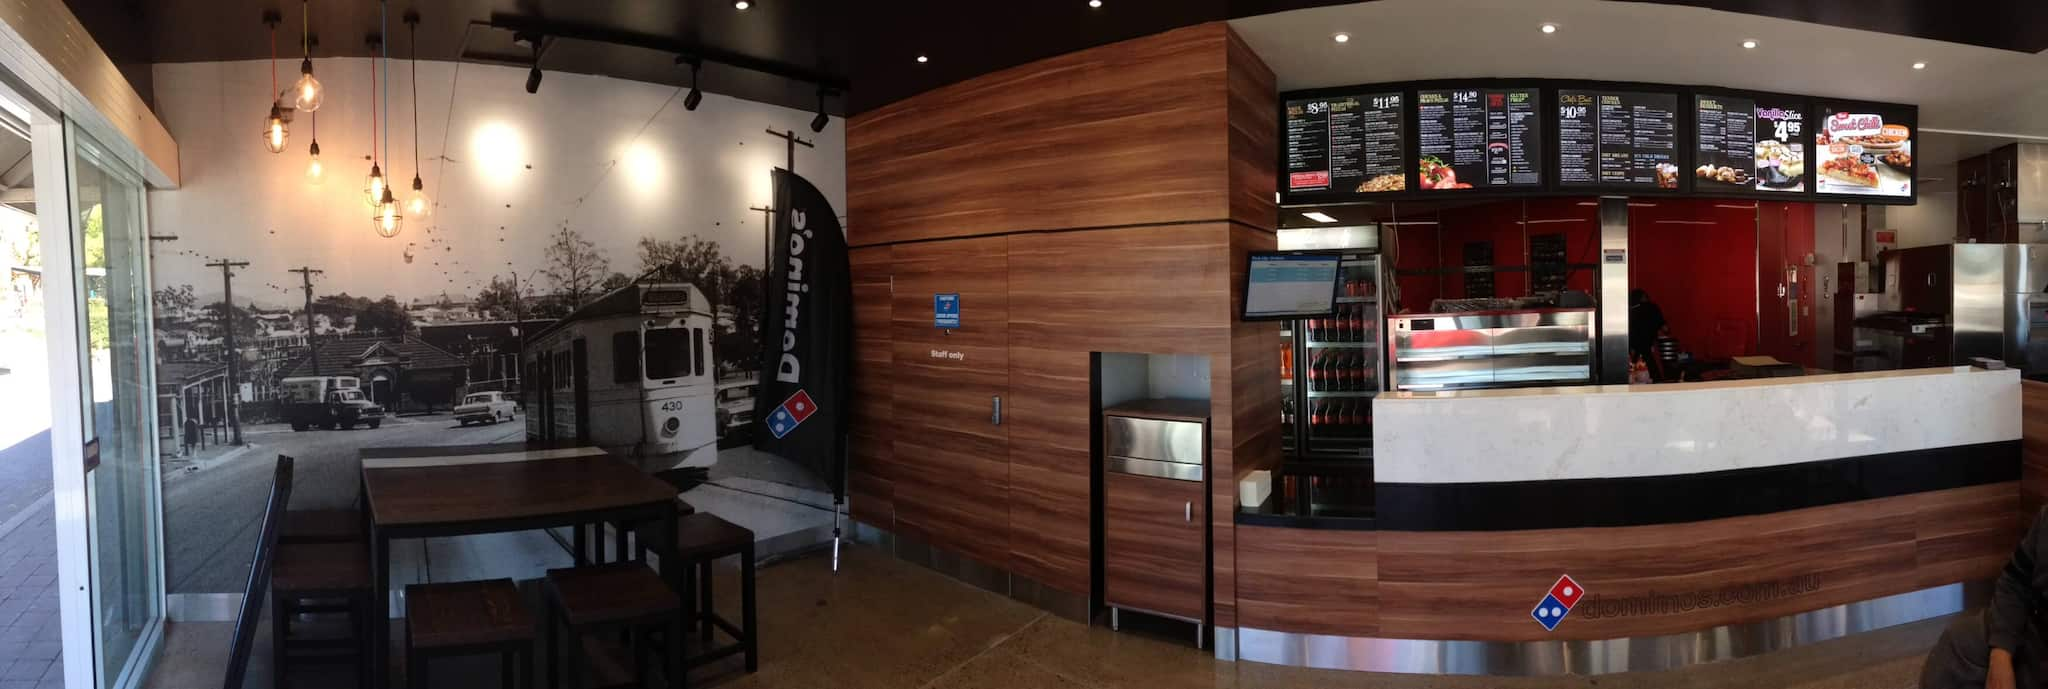 Genial Cairns Pizza Cairns Qld Order Pizza Delivery Takeaway Domino S Menu Prices 2017 Domino S Menu Prices List Pizza Stores nice food Dominos Menu Prices